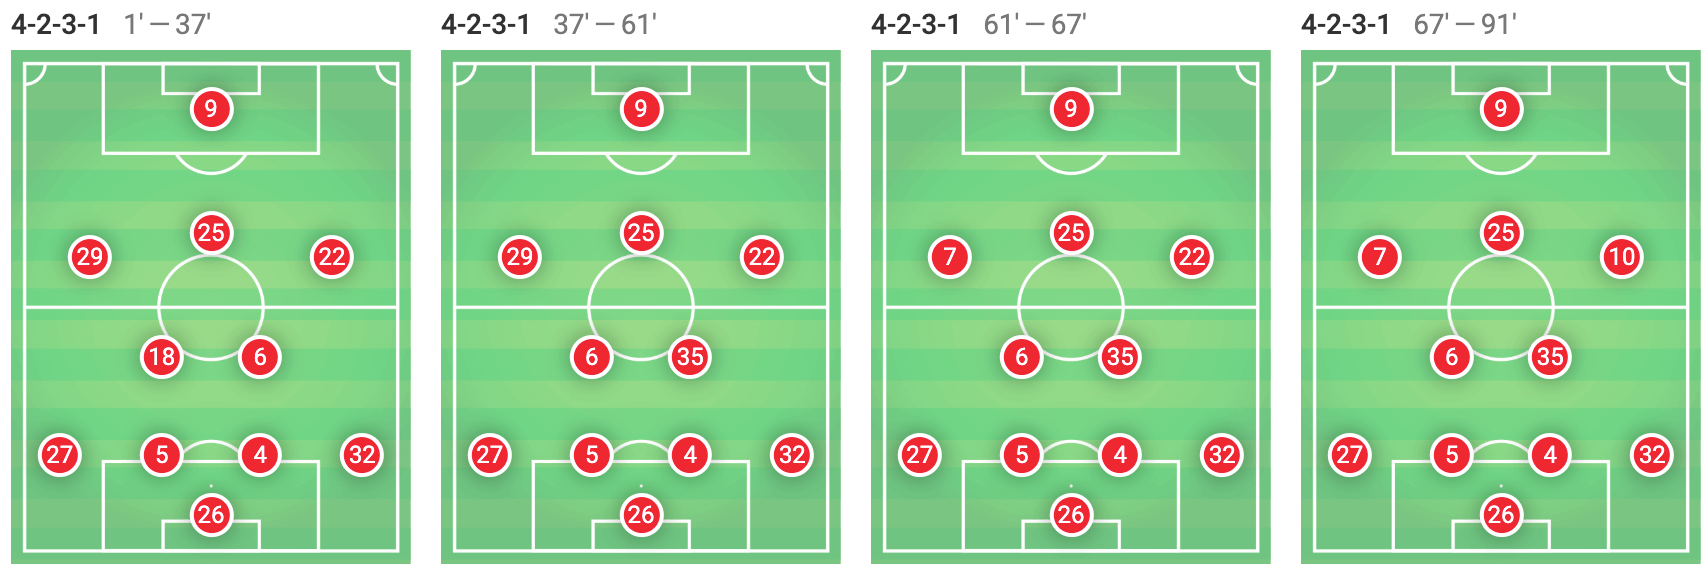 Bundesliga 2018/19 Tactical Analysis: Bayern Munich vs Eintracht Frankfurt